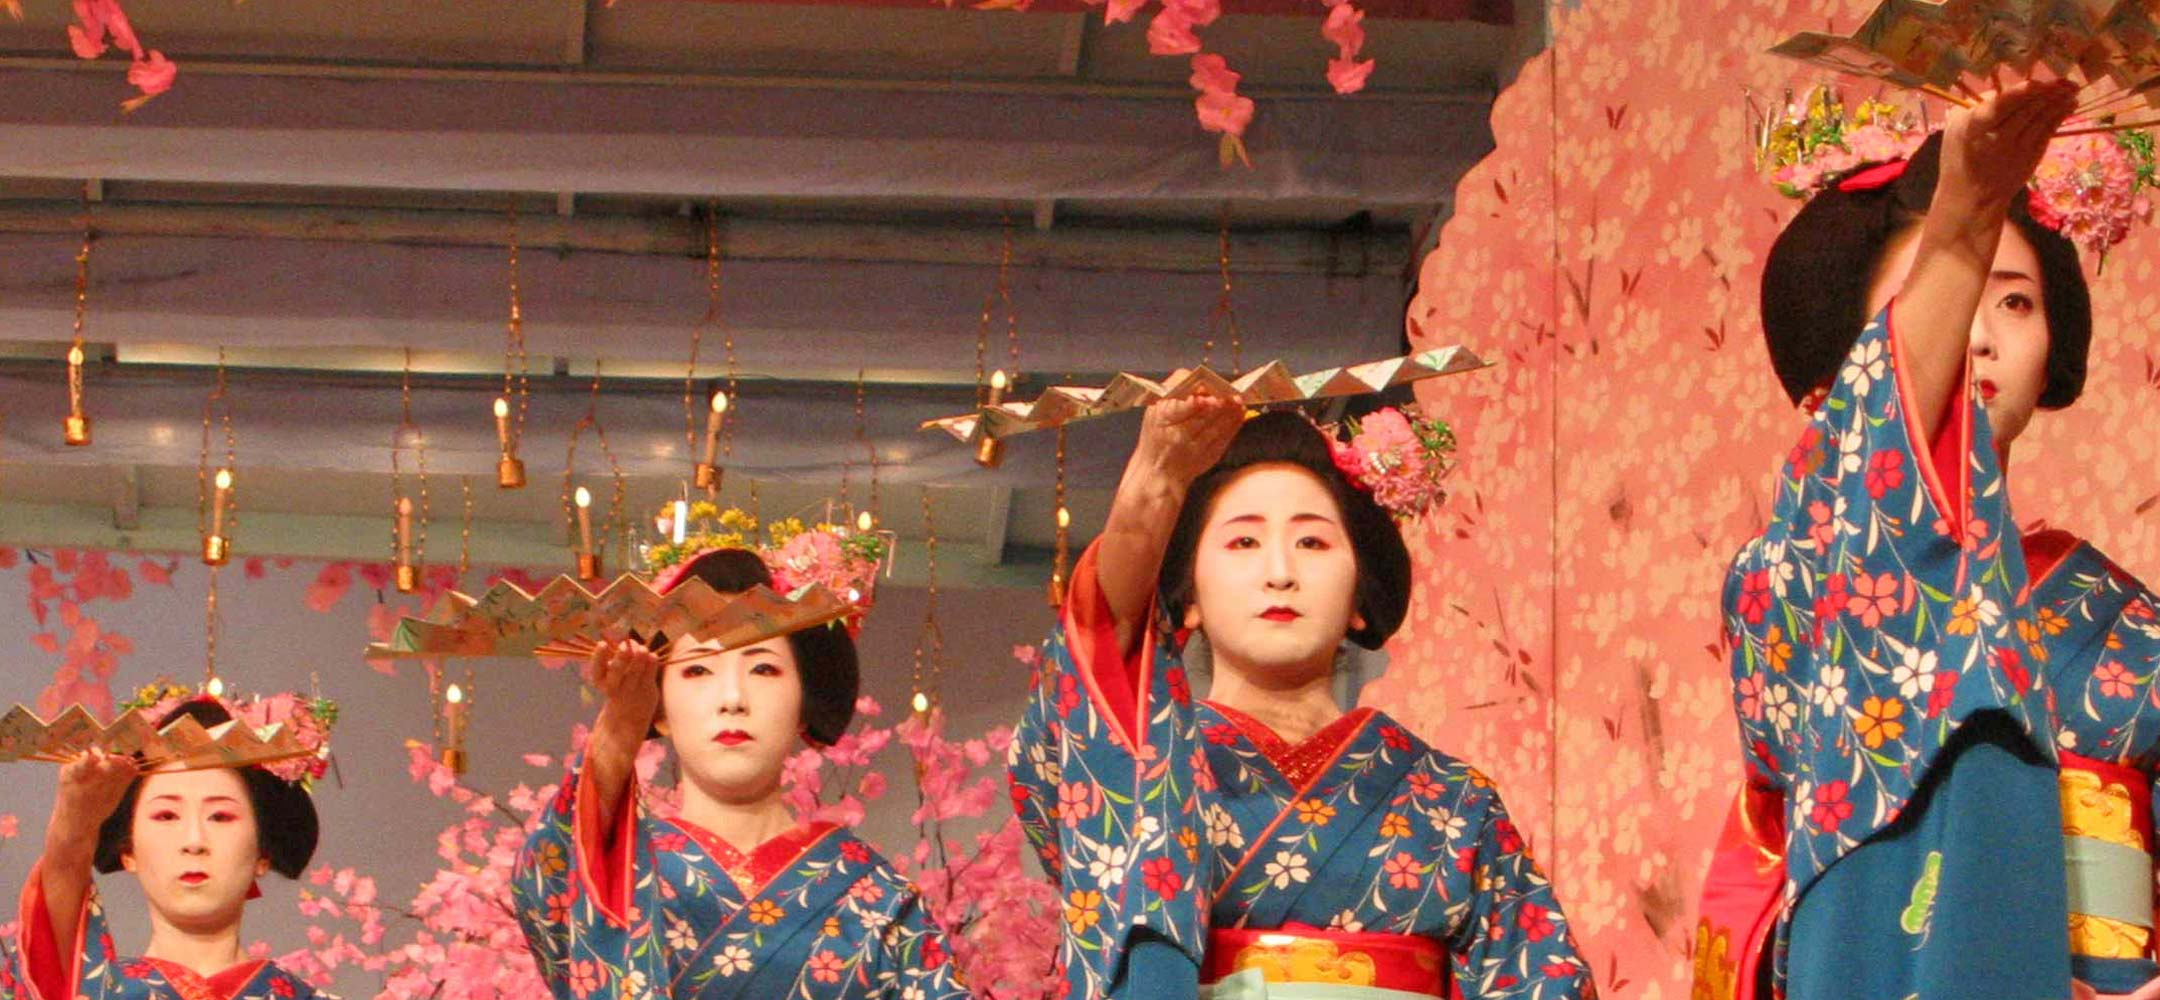 Geisha dance performances